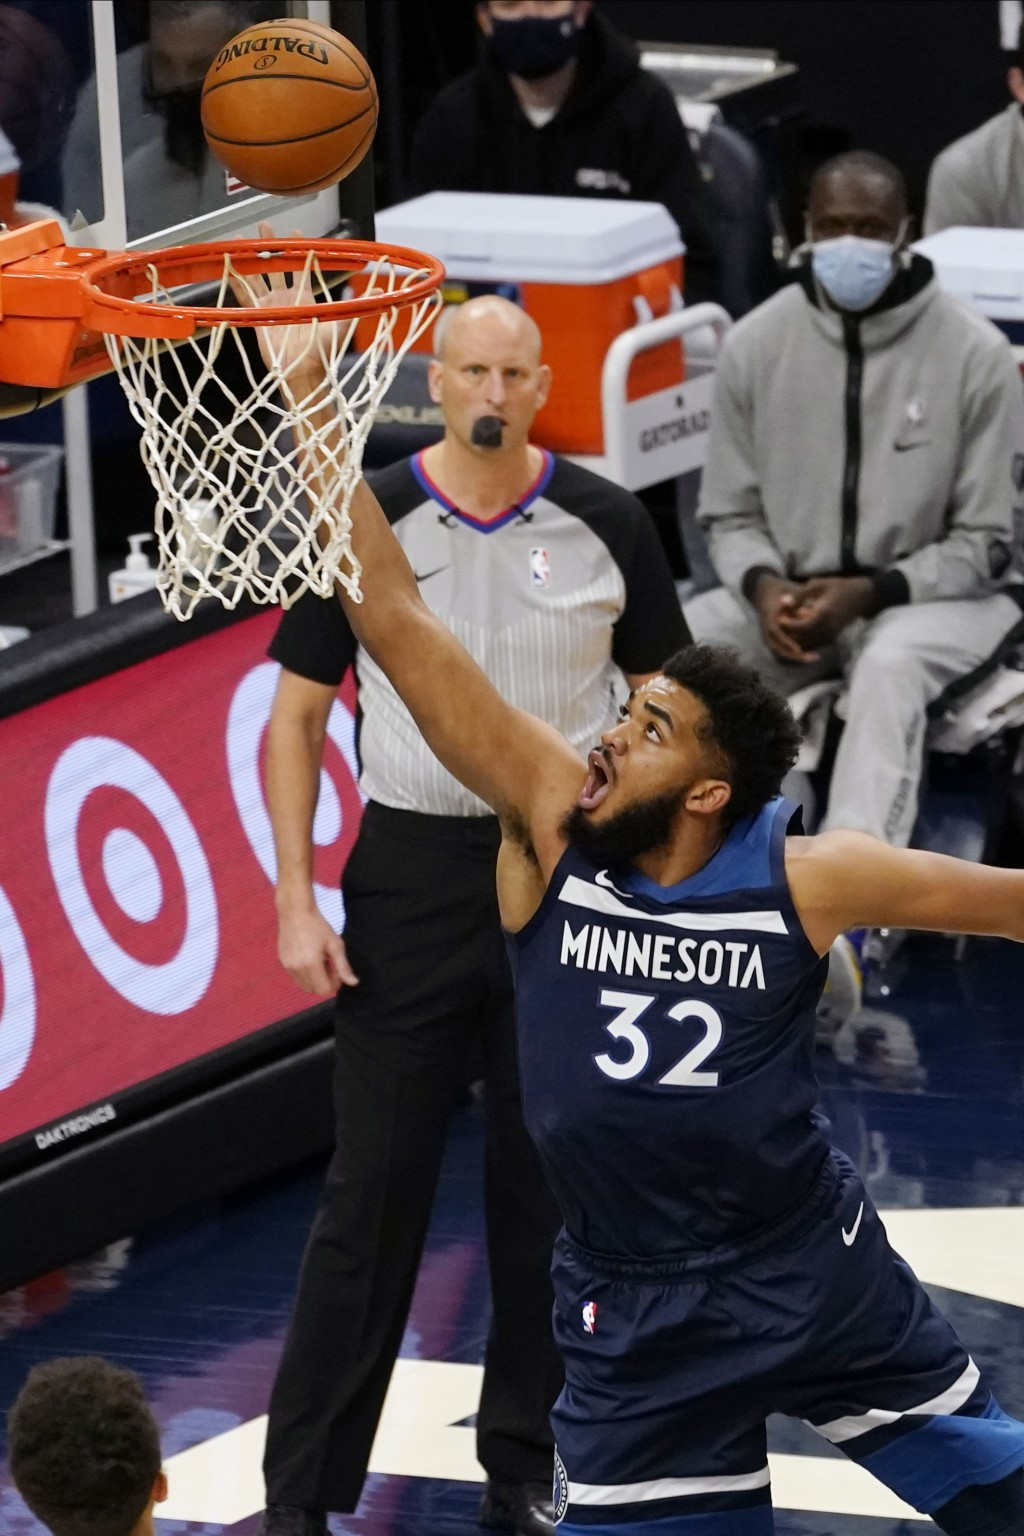 Minnesota Timberwolves' Karl-Anthony Towns (32) lays up a shot in the first half of an NBA basketball game against the Memphis Grizzlies, Wednesday, J...